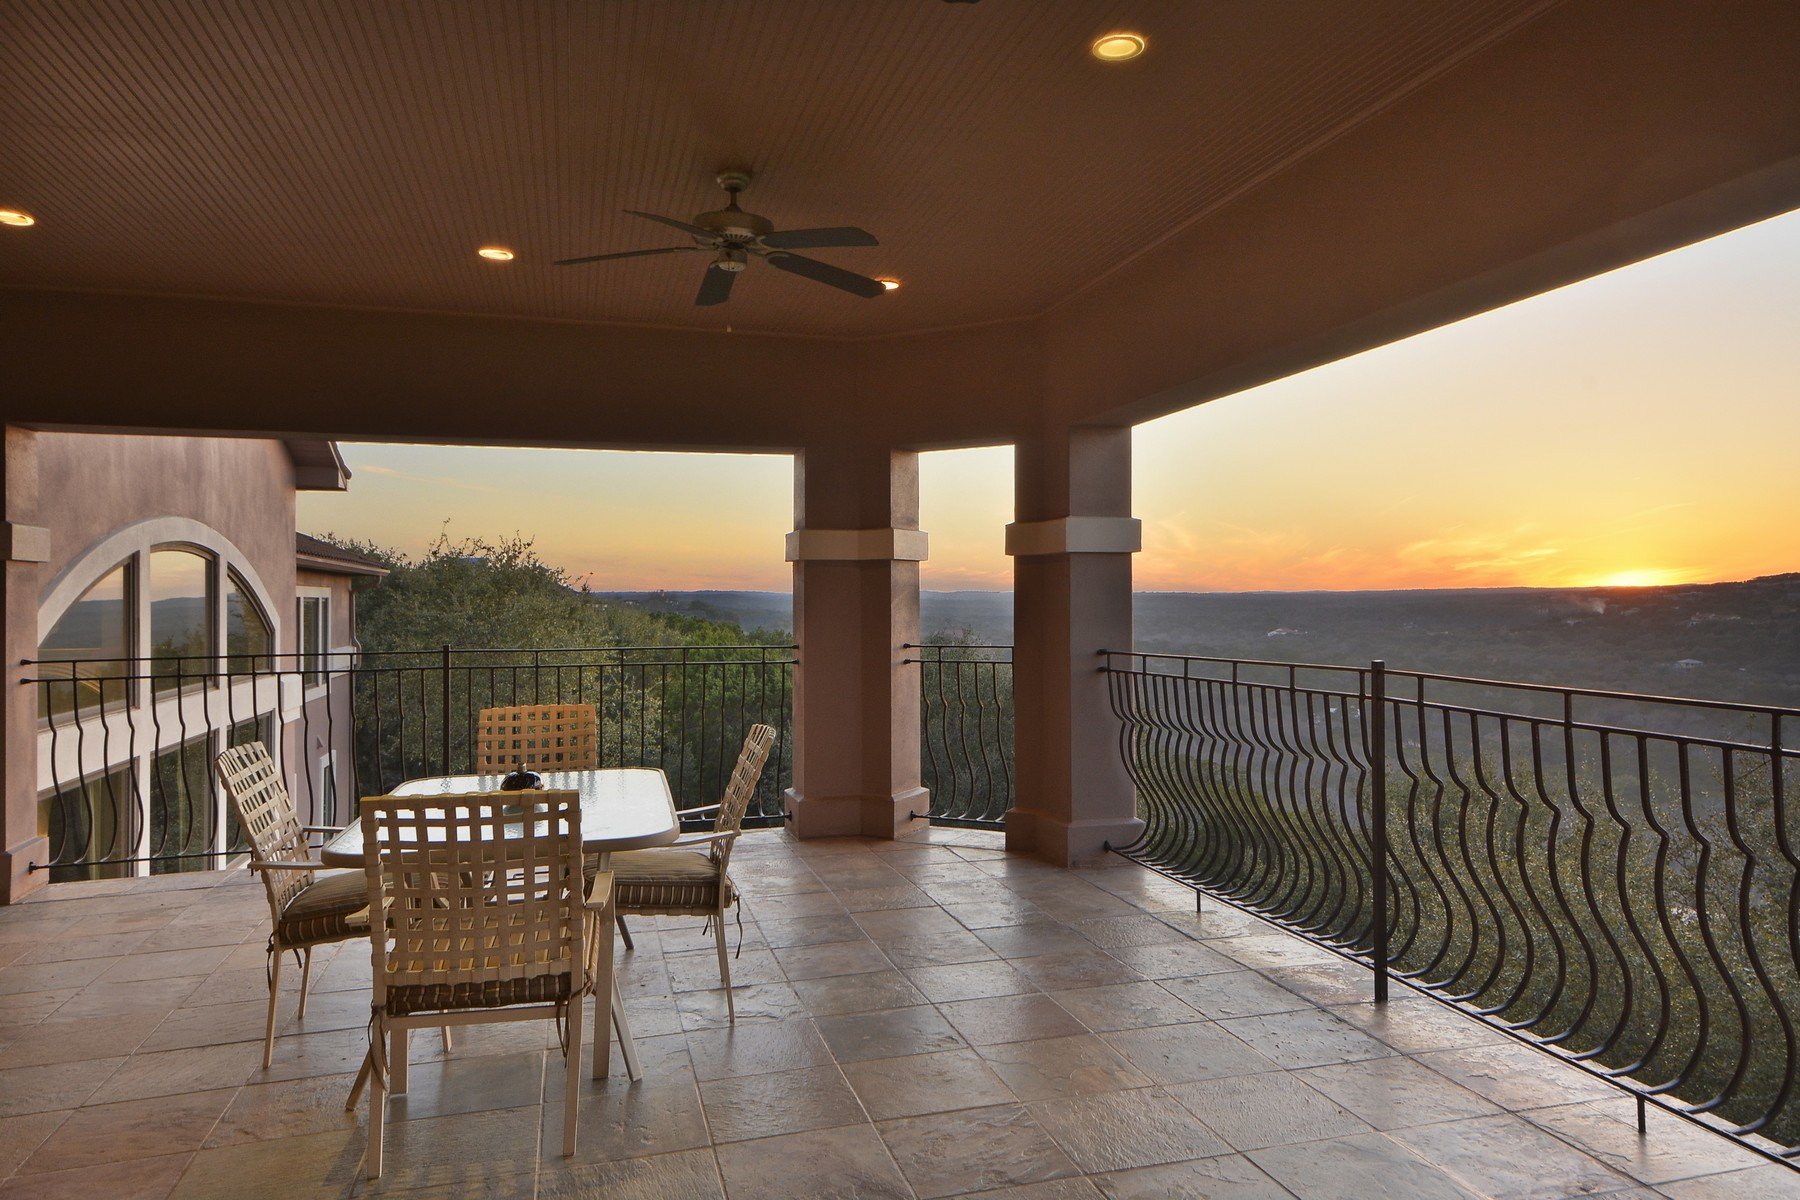 Additional photo for property listing at Stunning Transitional Home on 5+- Acres 10901 W Highway 71 Austin, Texas 78735 Estados Unidos